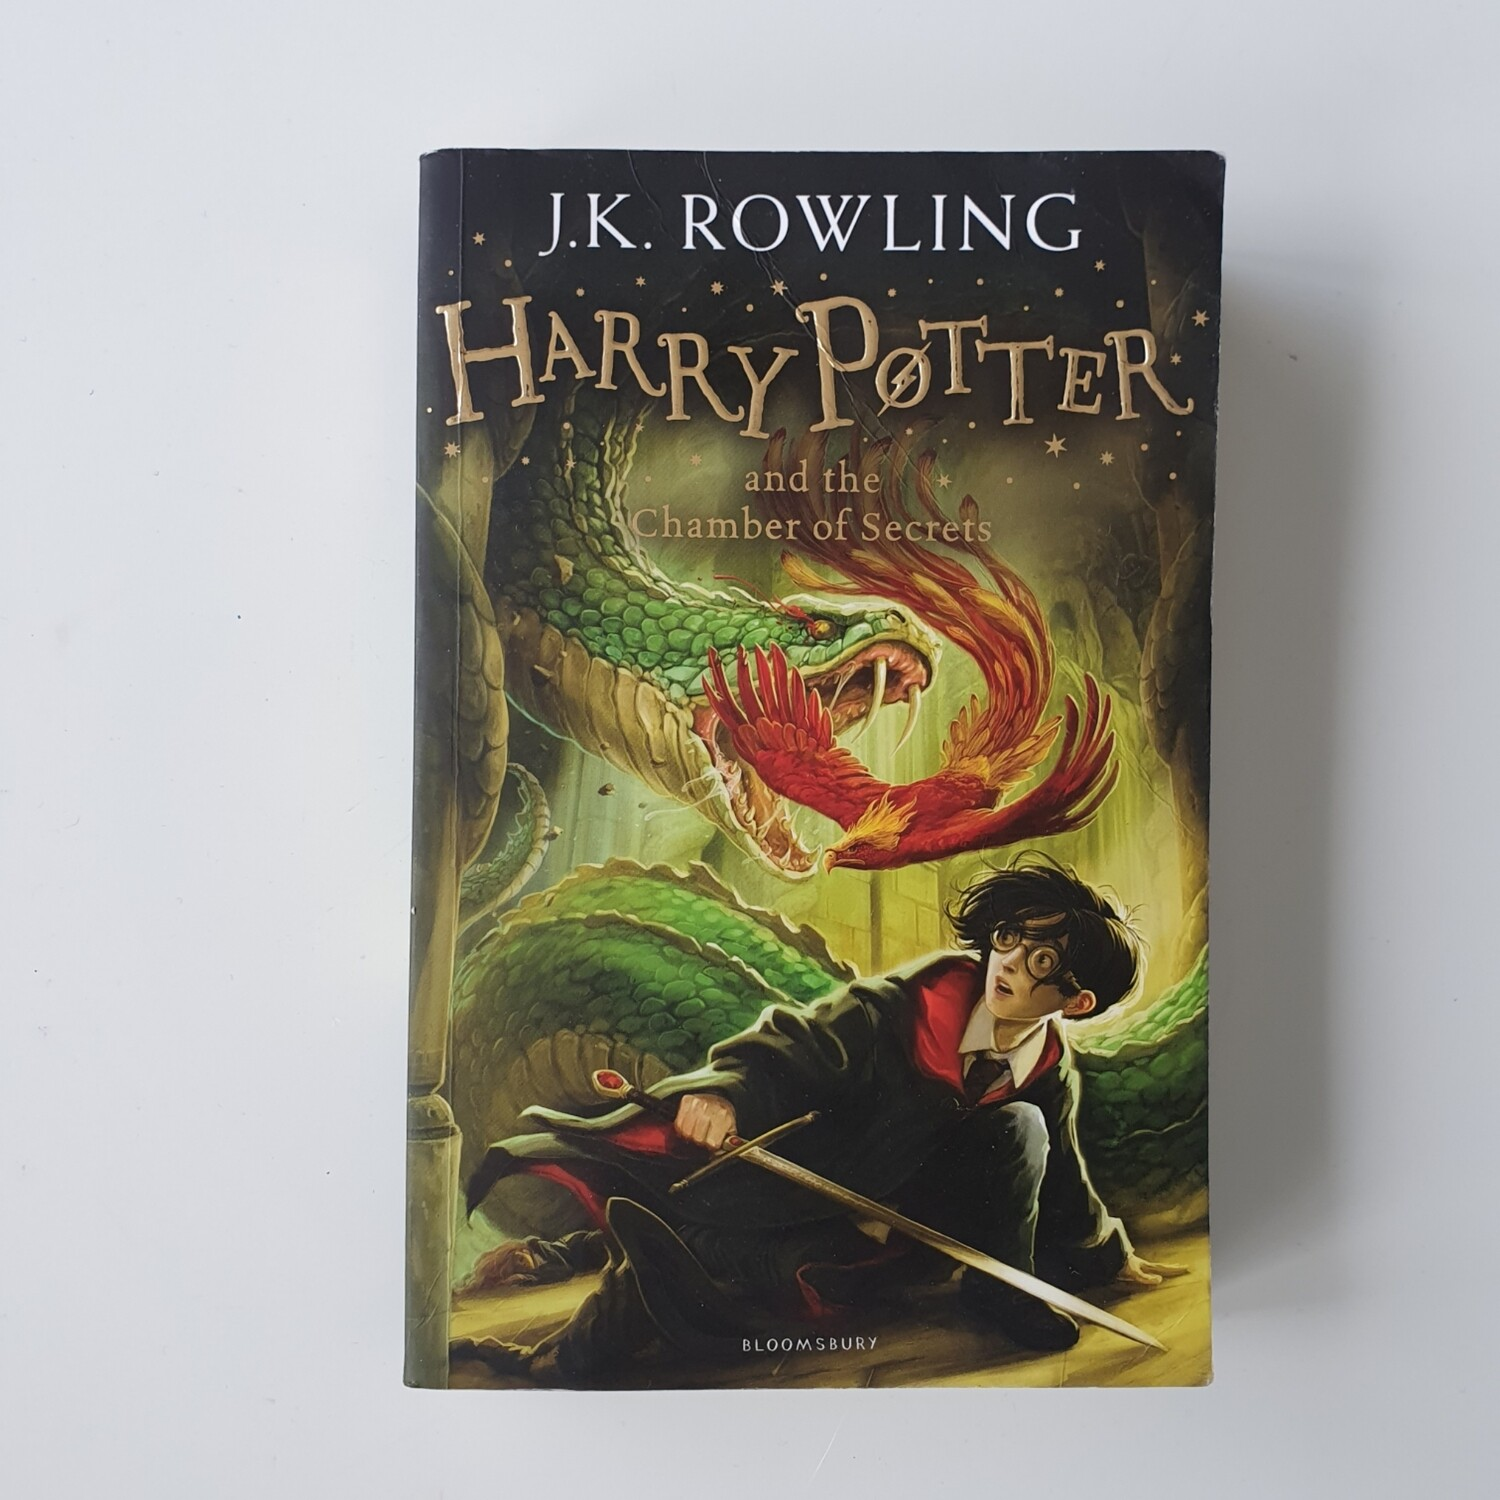 Harry Potter and the Chamber of Secrets Notebook - made from a paperback book